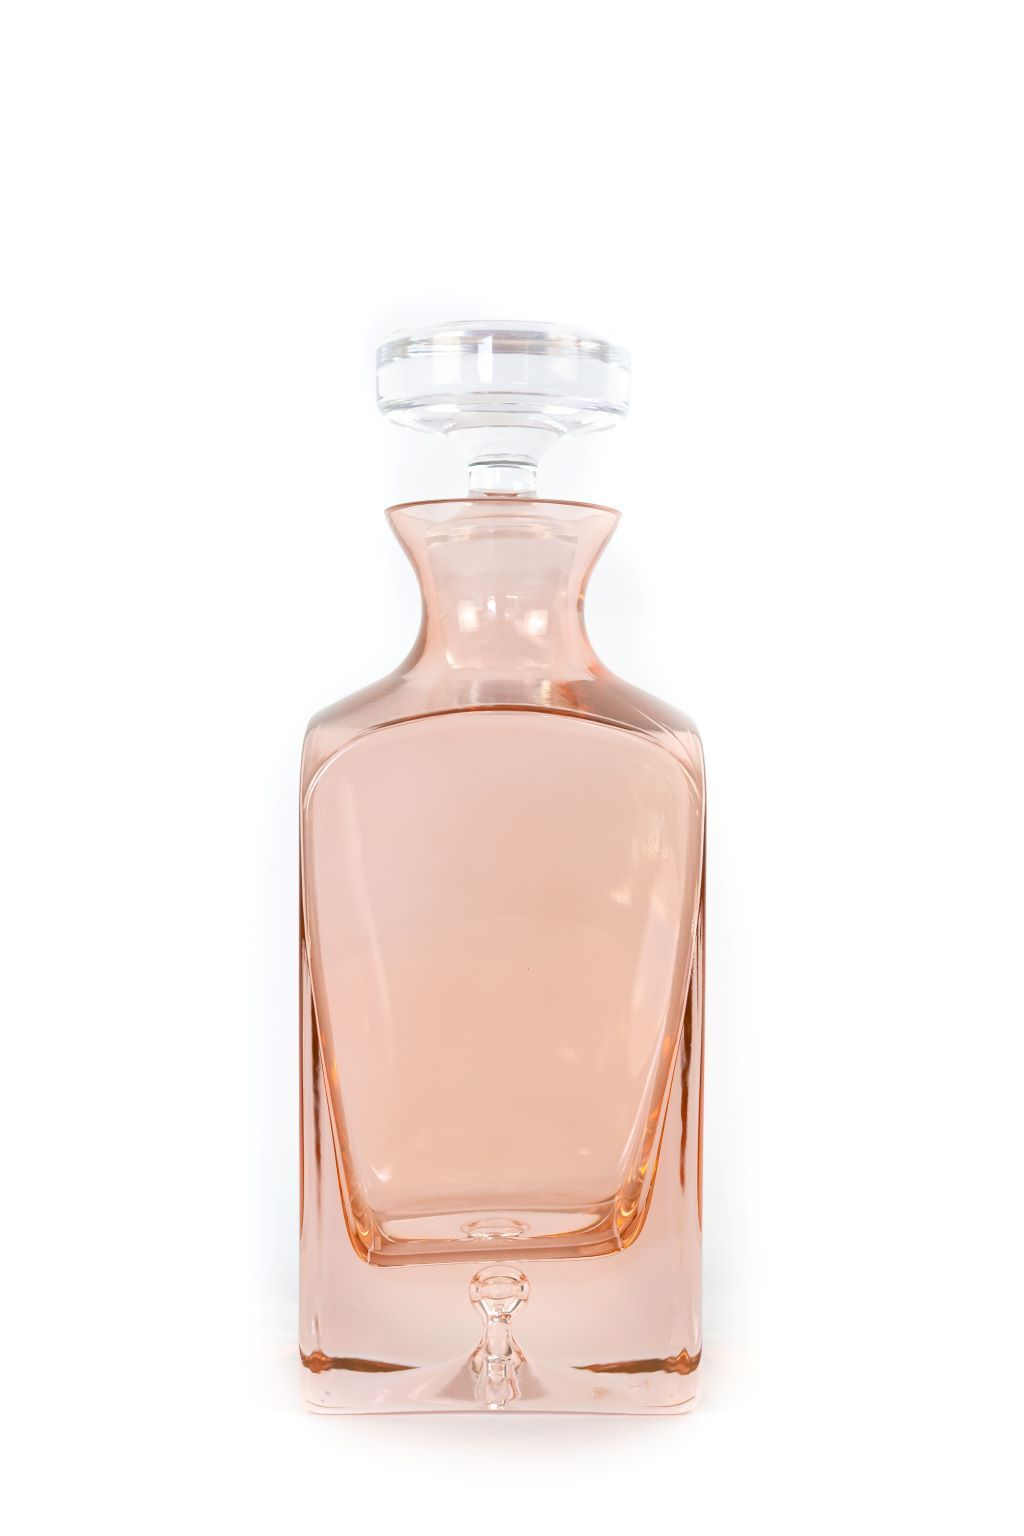 Decanter in Blush Pink